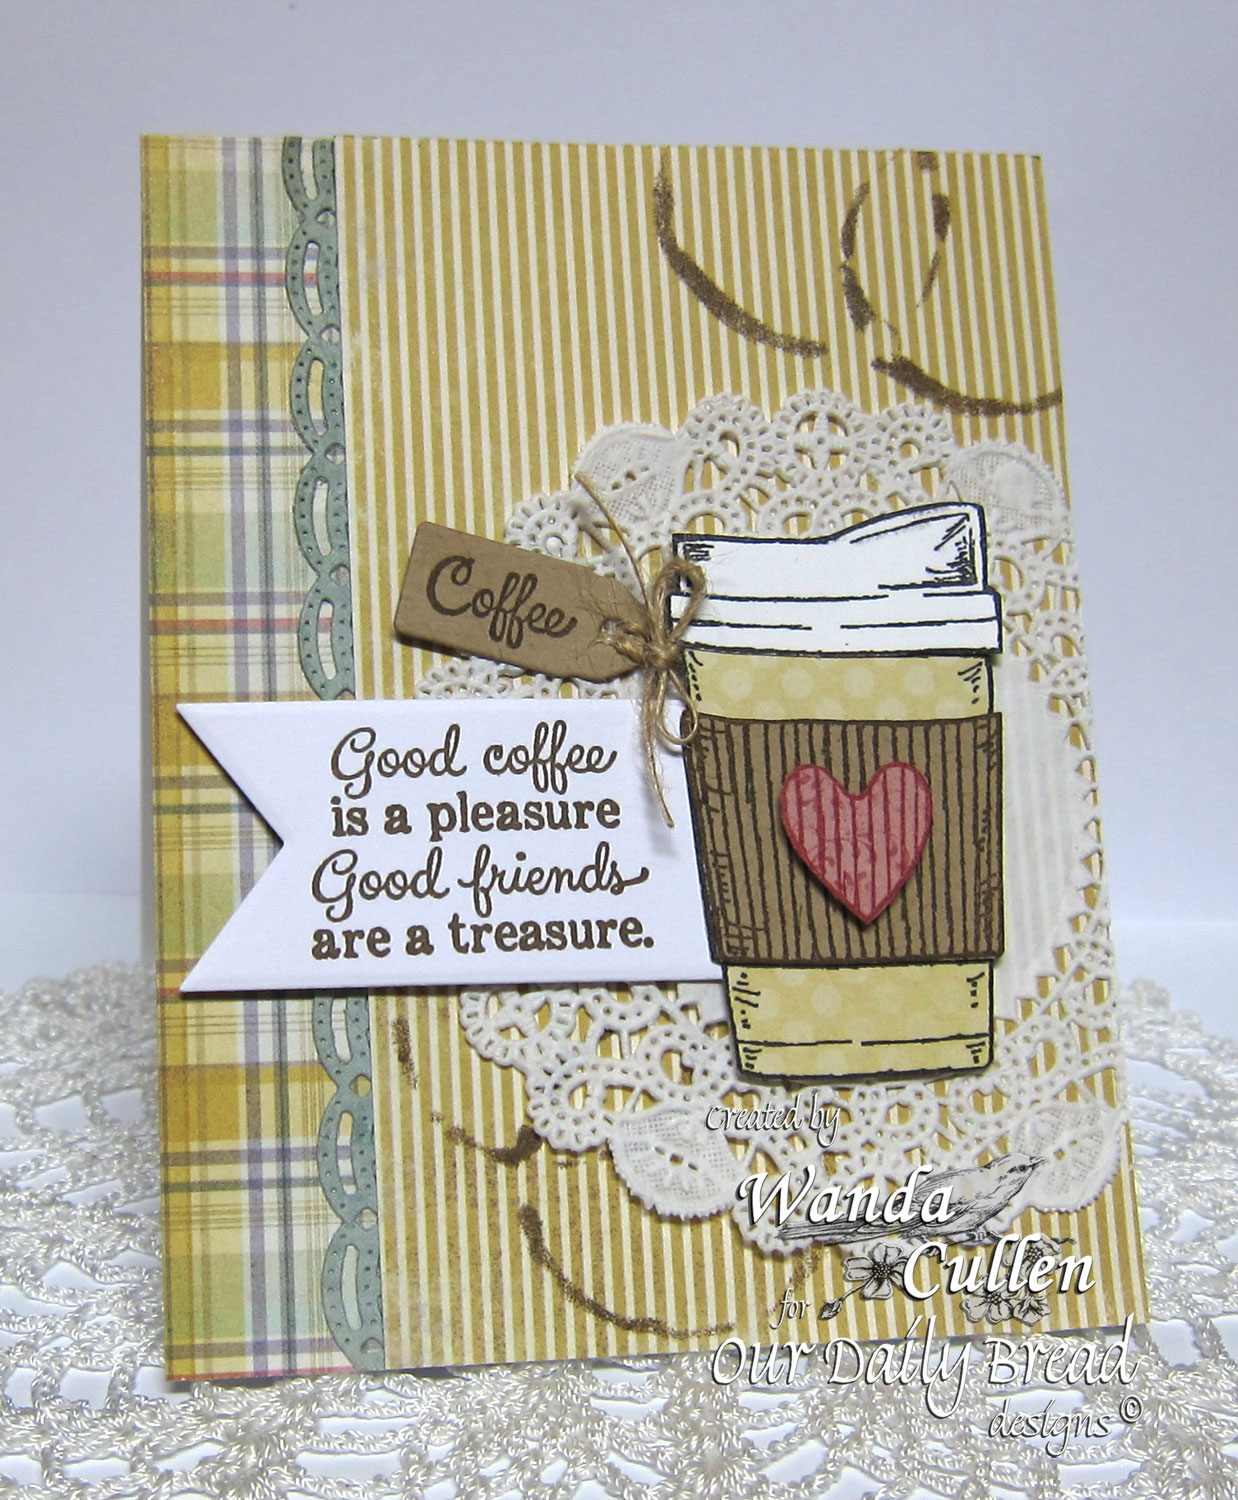 Stamps - North Coast Creations Warm My Heart, Our Daily Bread Designs Custom Beautiful Borders Dies